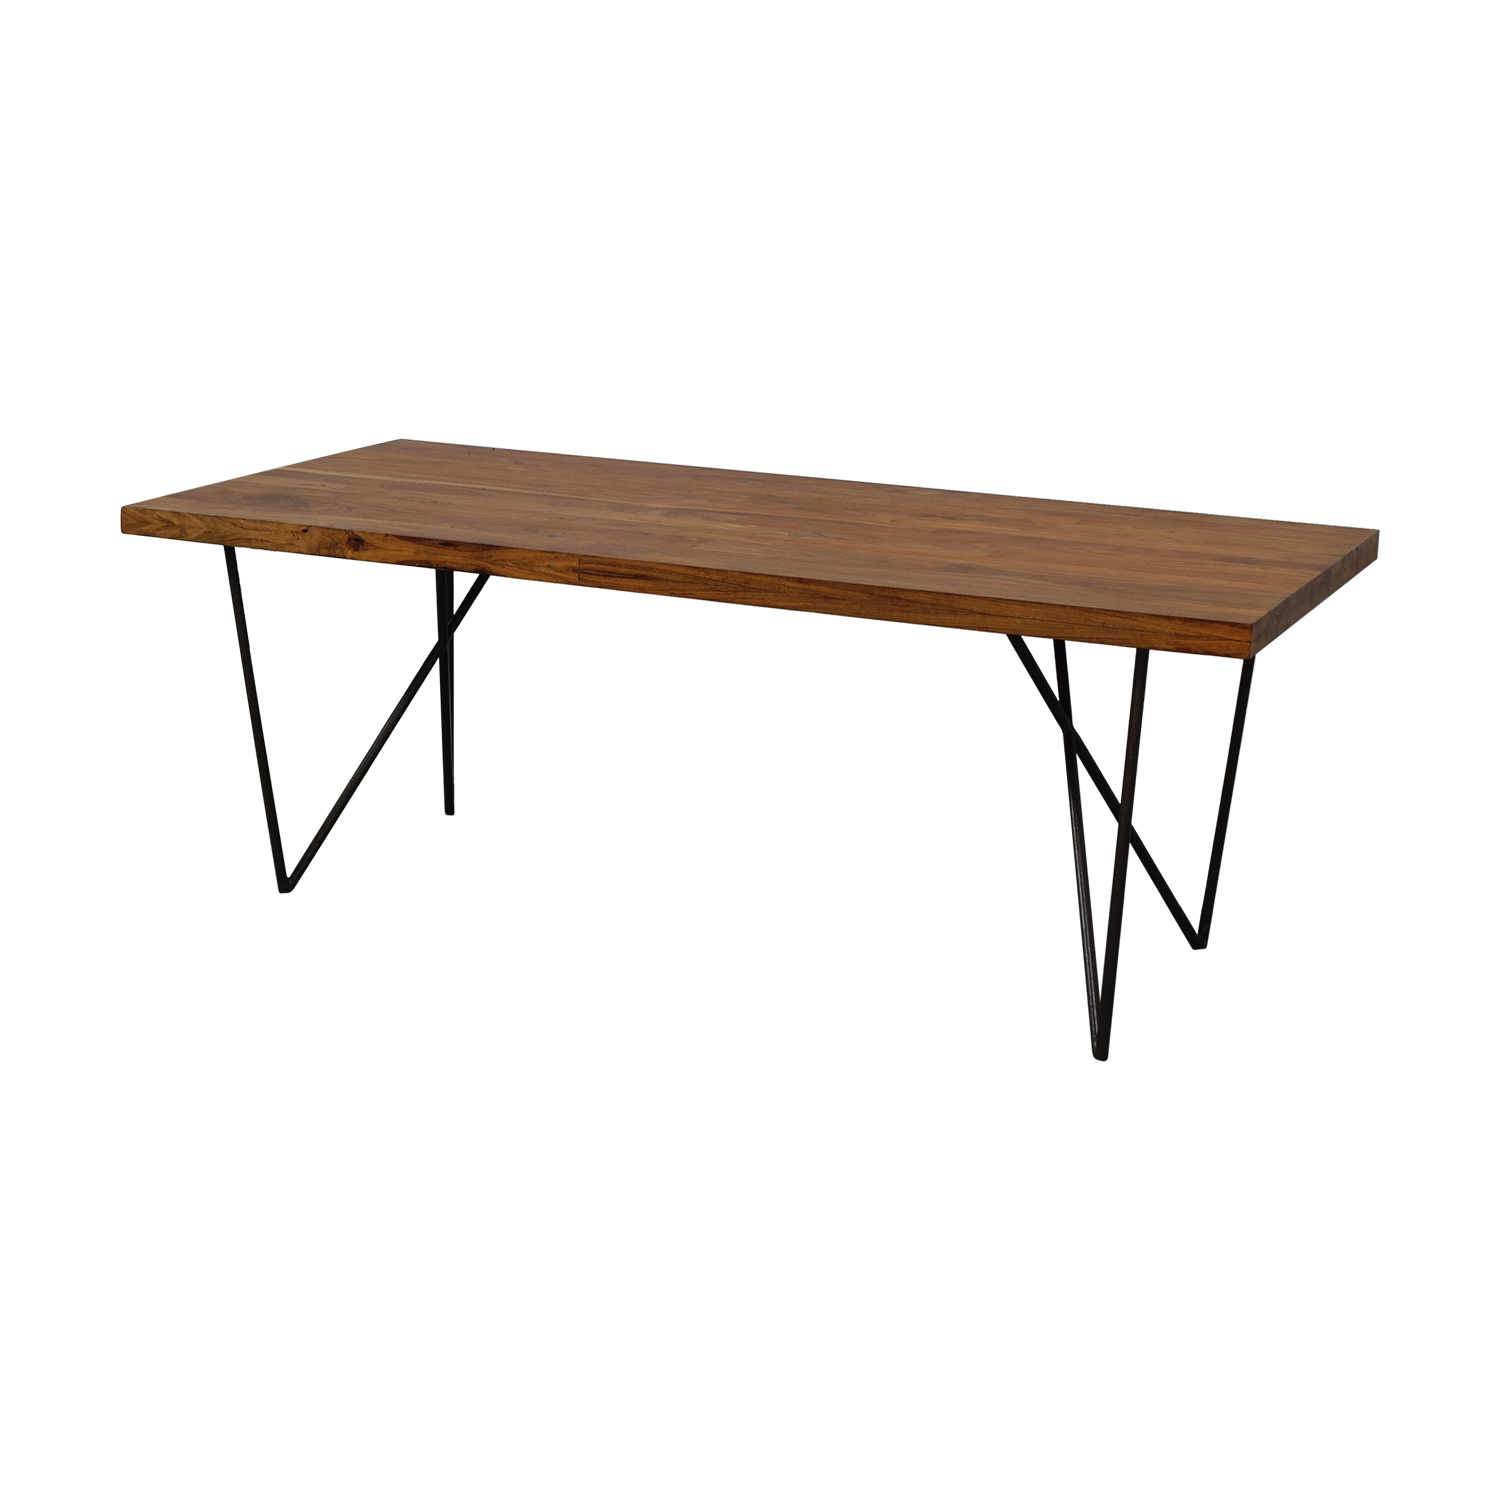 CB2 CB2 Dylan Wood Dining Table brown